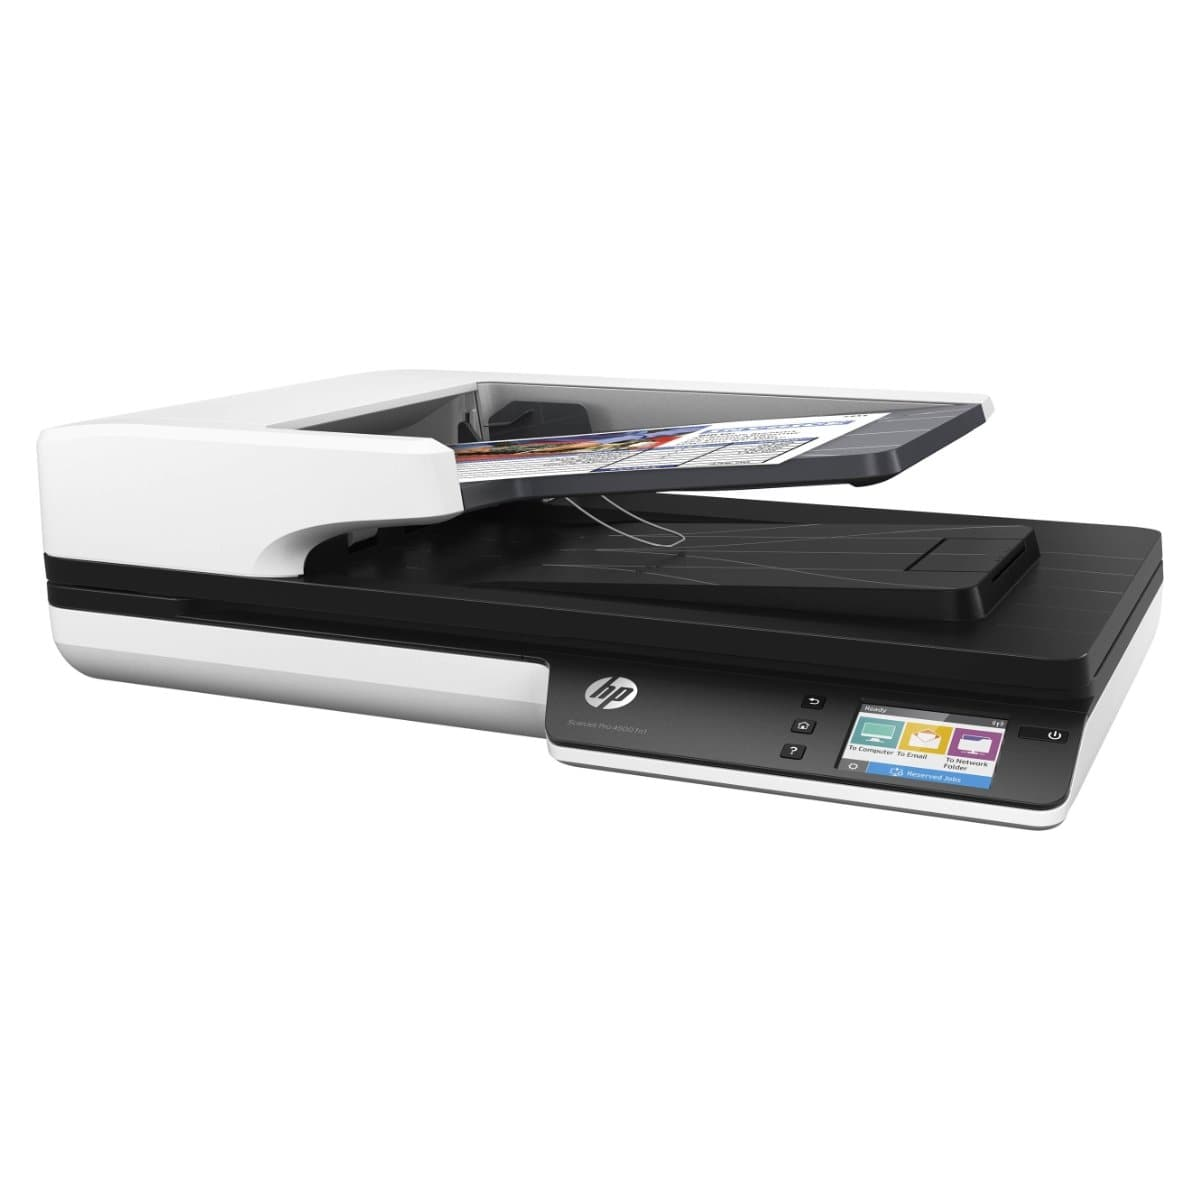 HP ScanJet Pro 4500 fn1 Network Scanner - L2749A